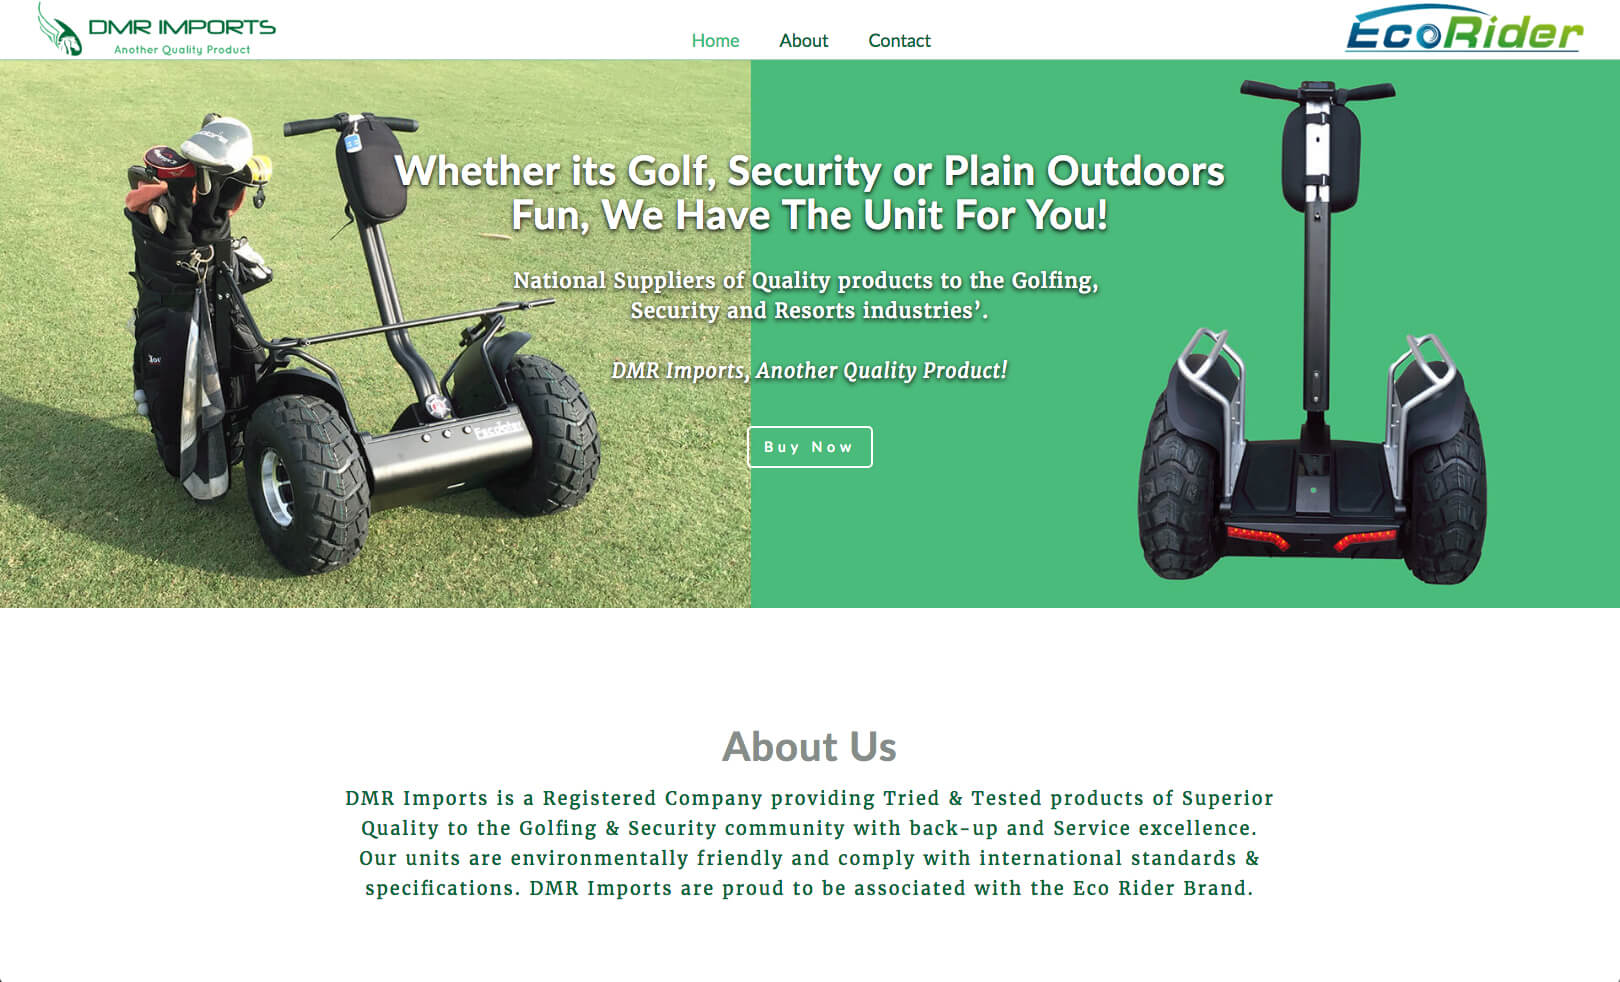 Webpage build and design for a national supplier of quality products to the Golfing, Security and Resorts industries.